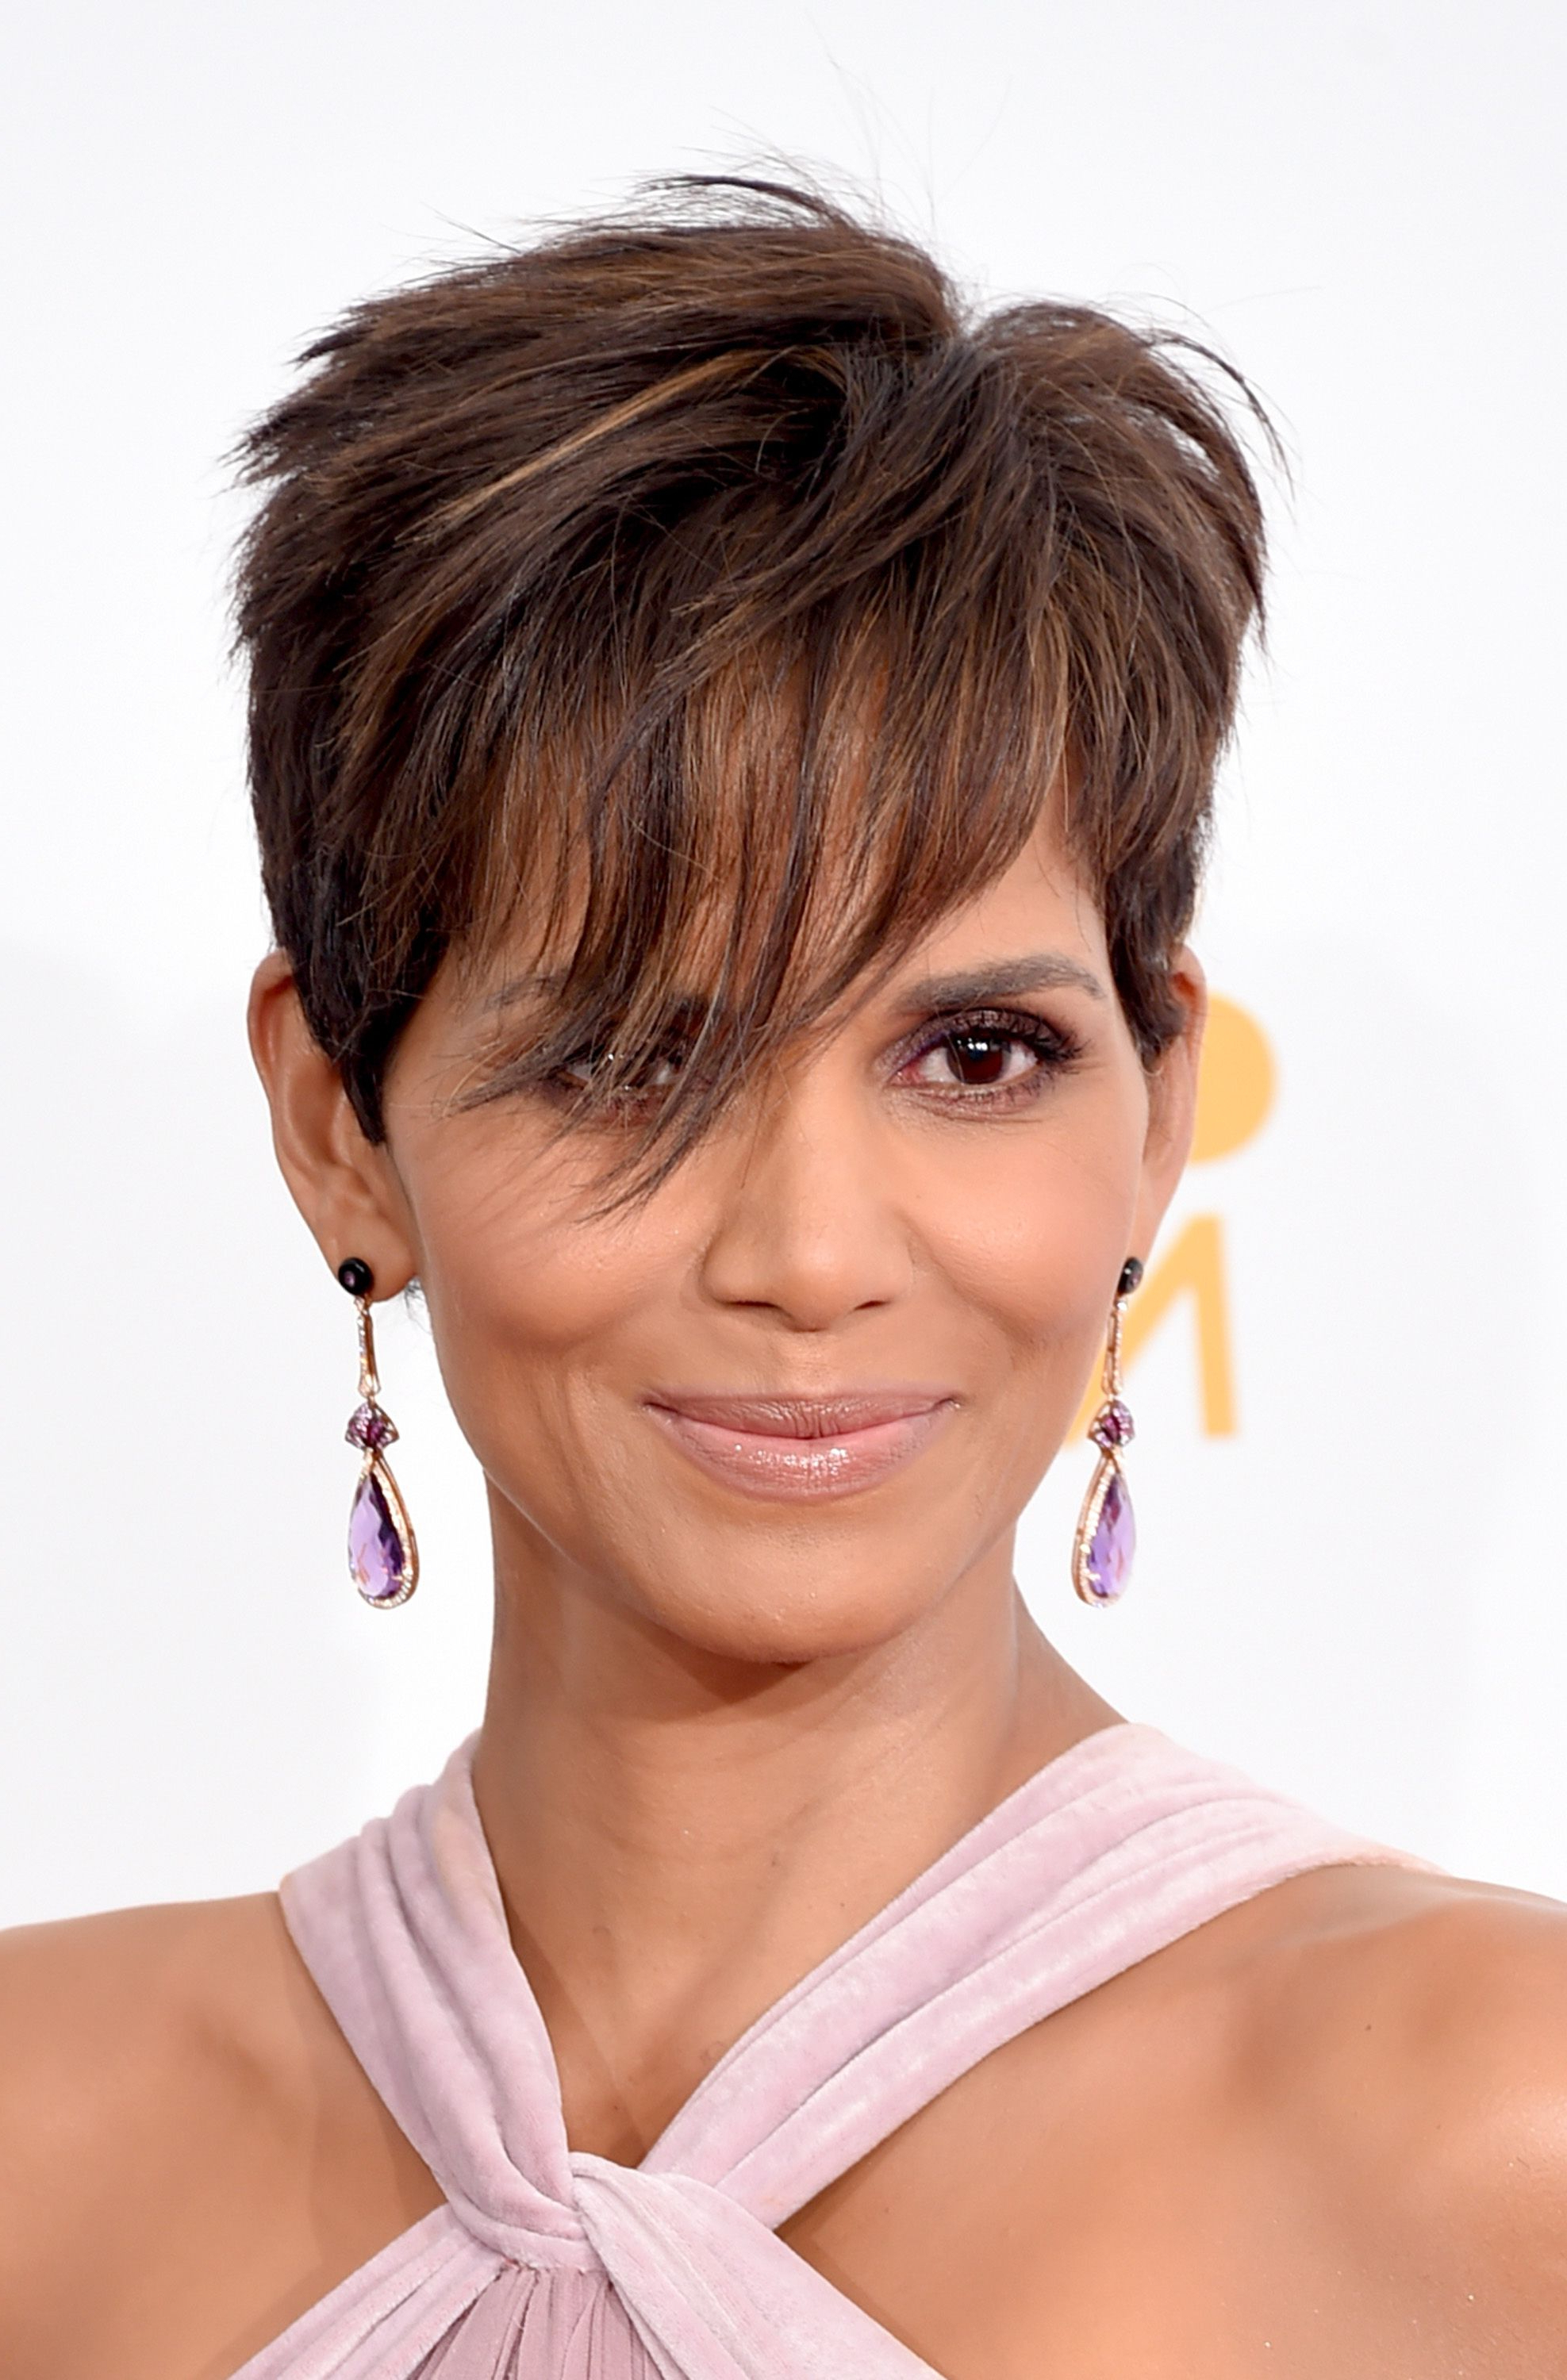 40 Best Short Pixie Cut Hairstyles 2019 – Cute Pixie Pertaining To Classy Pixie Haircuts (View 15 of 20)